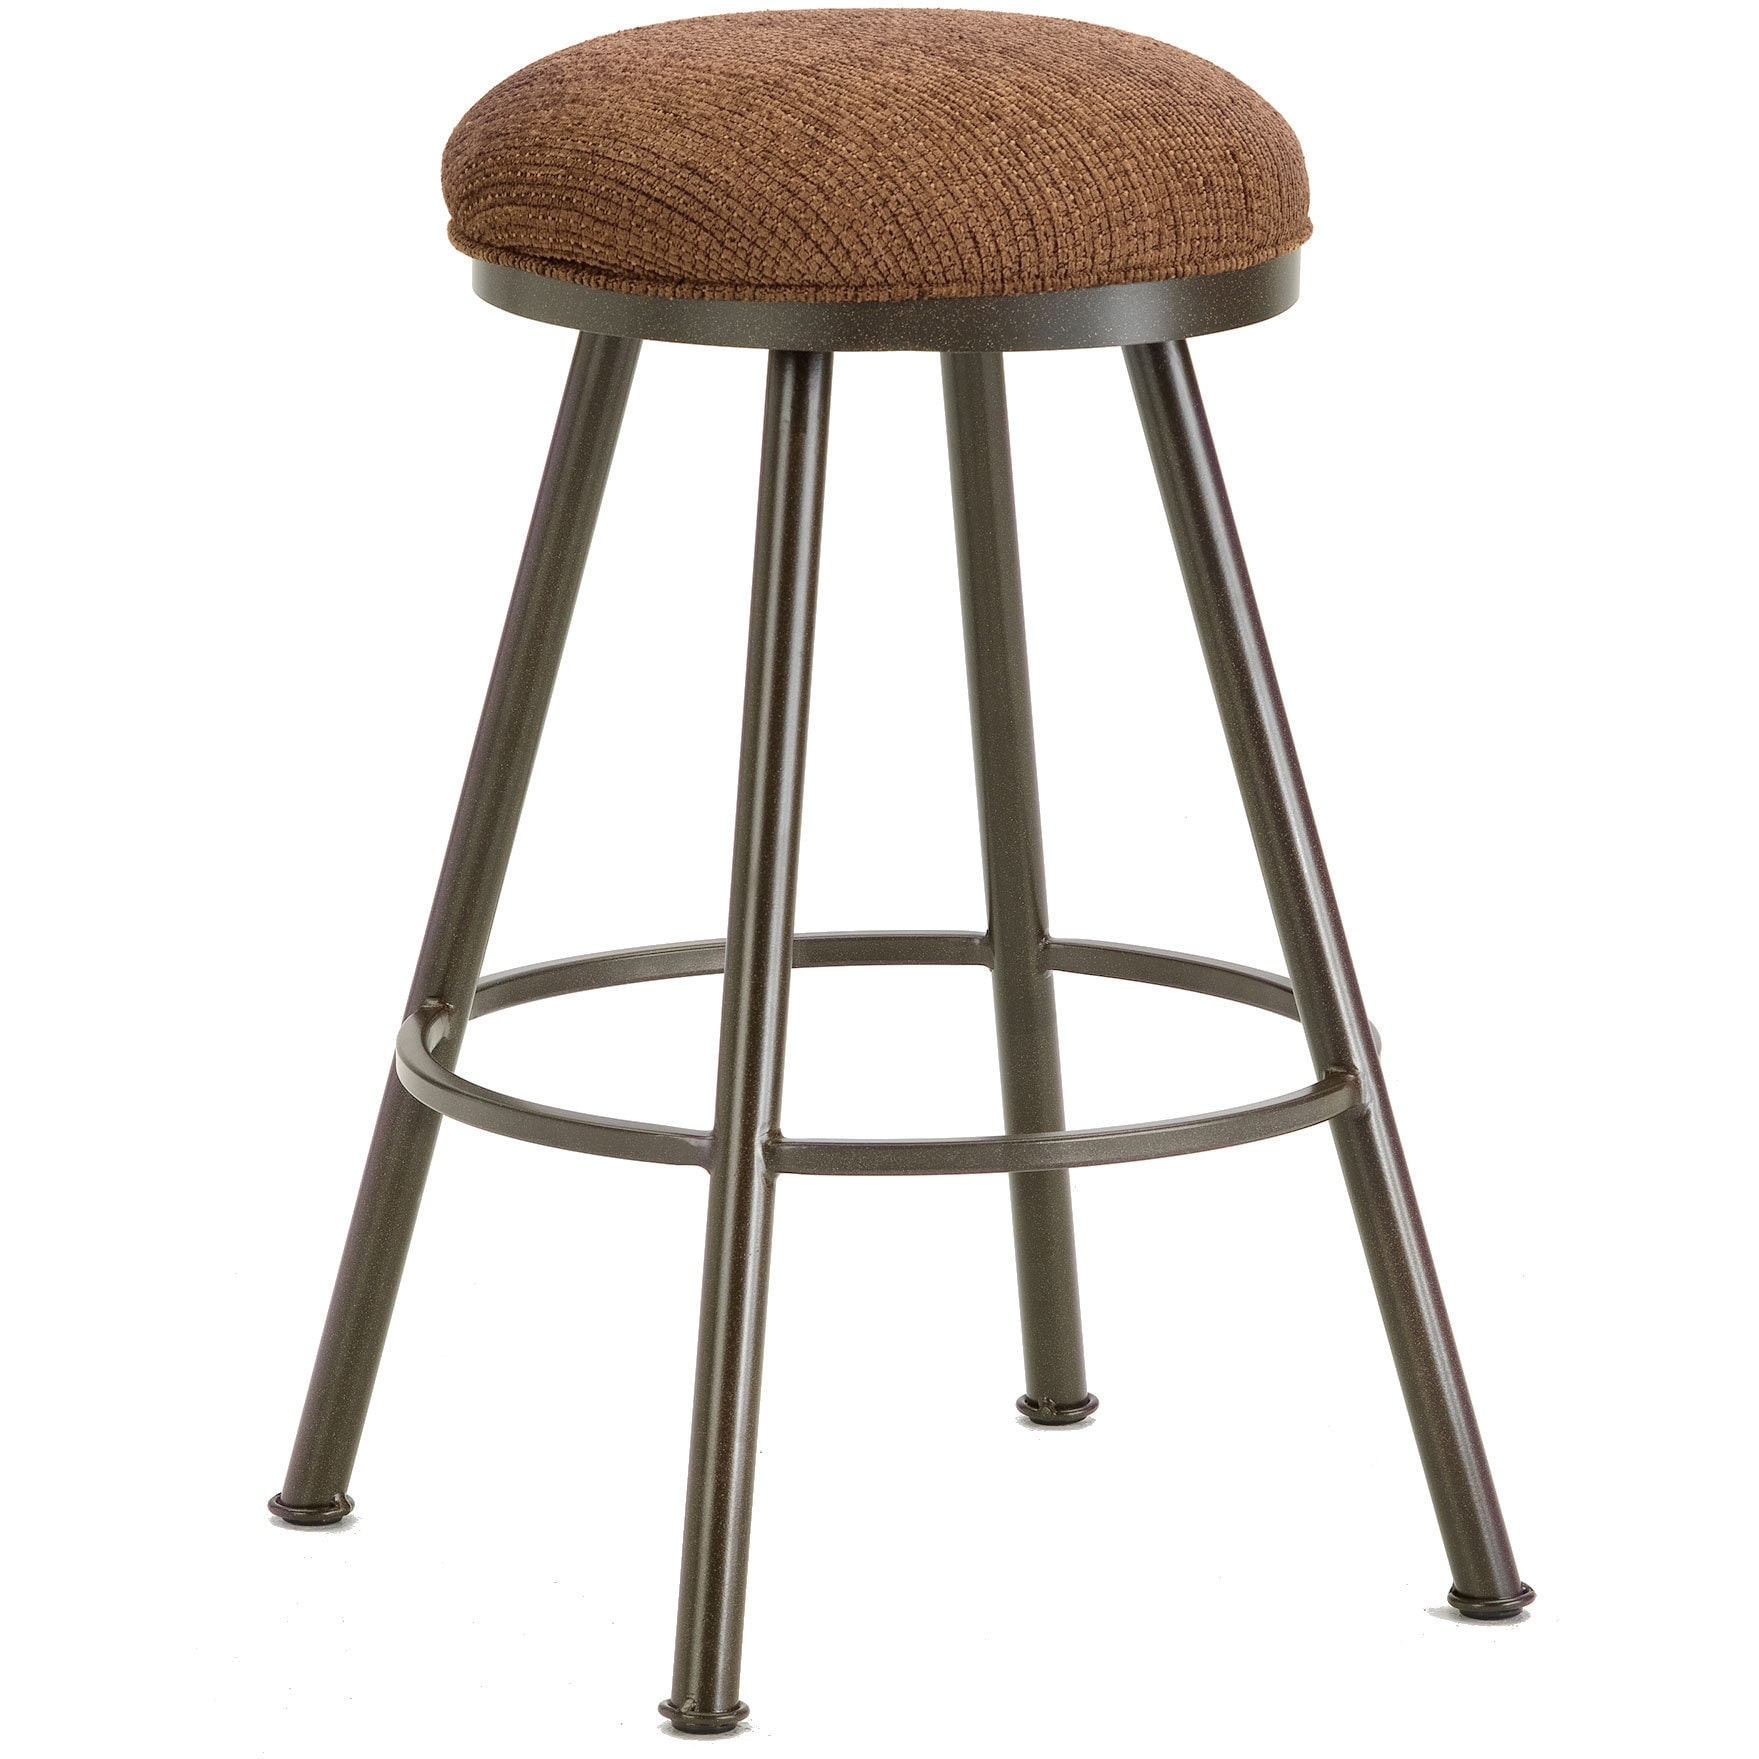 DFI Alexander Steel Upholstered Backless Swivel Bar Stool